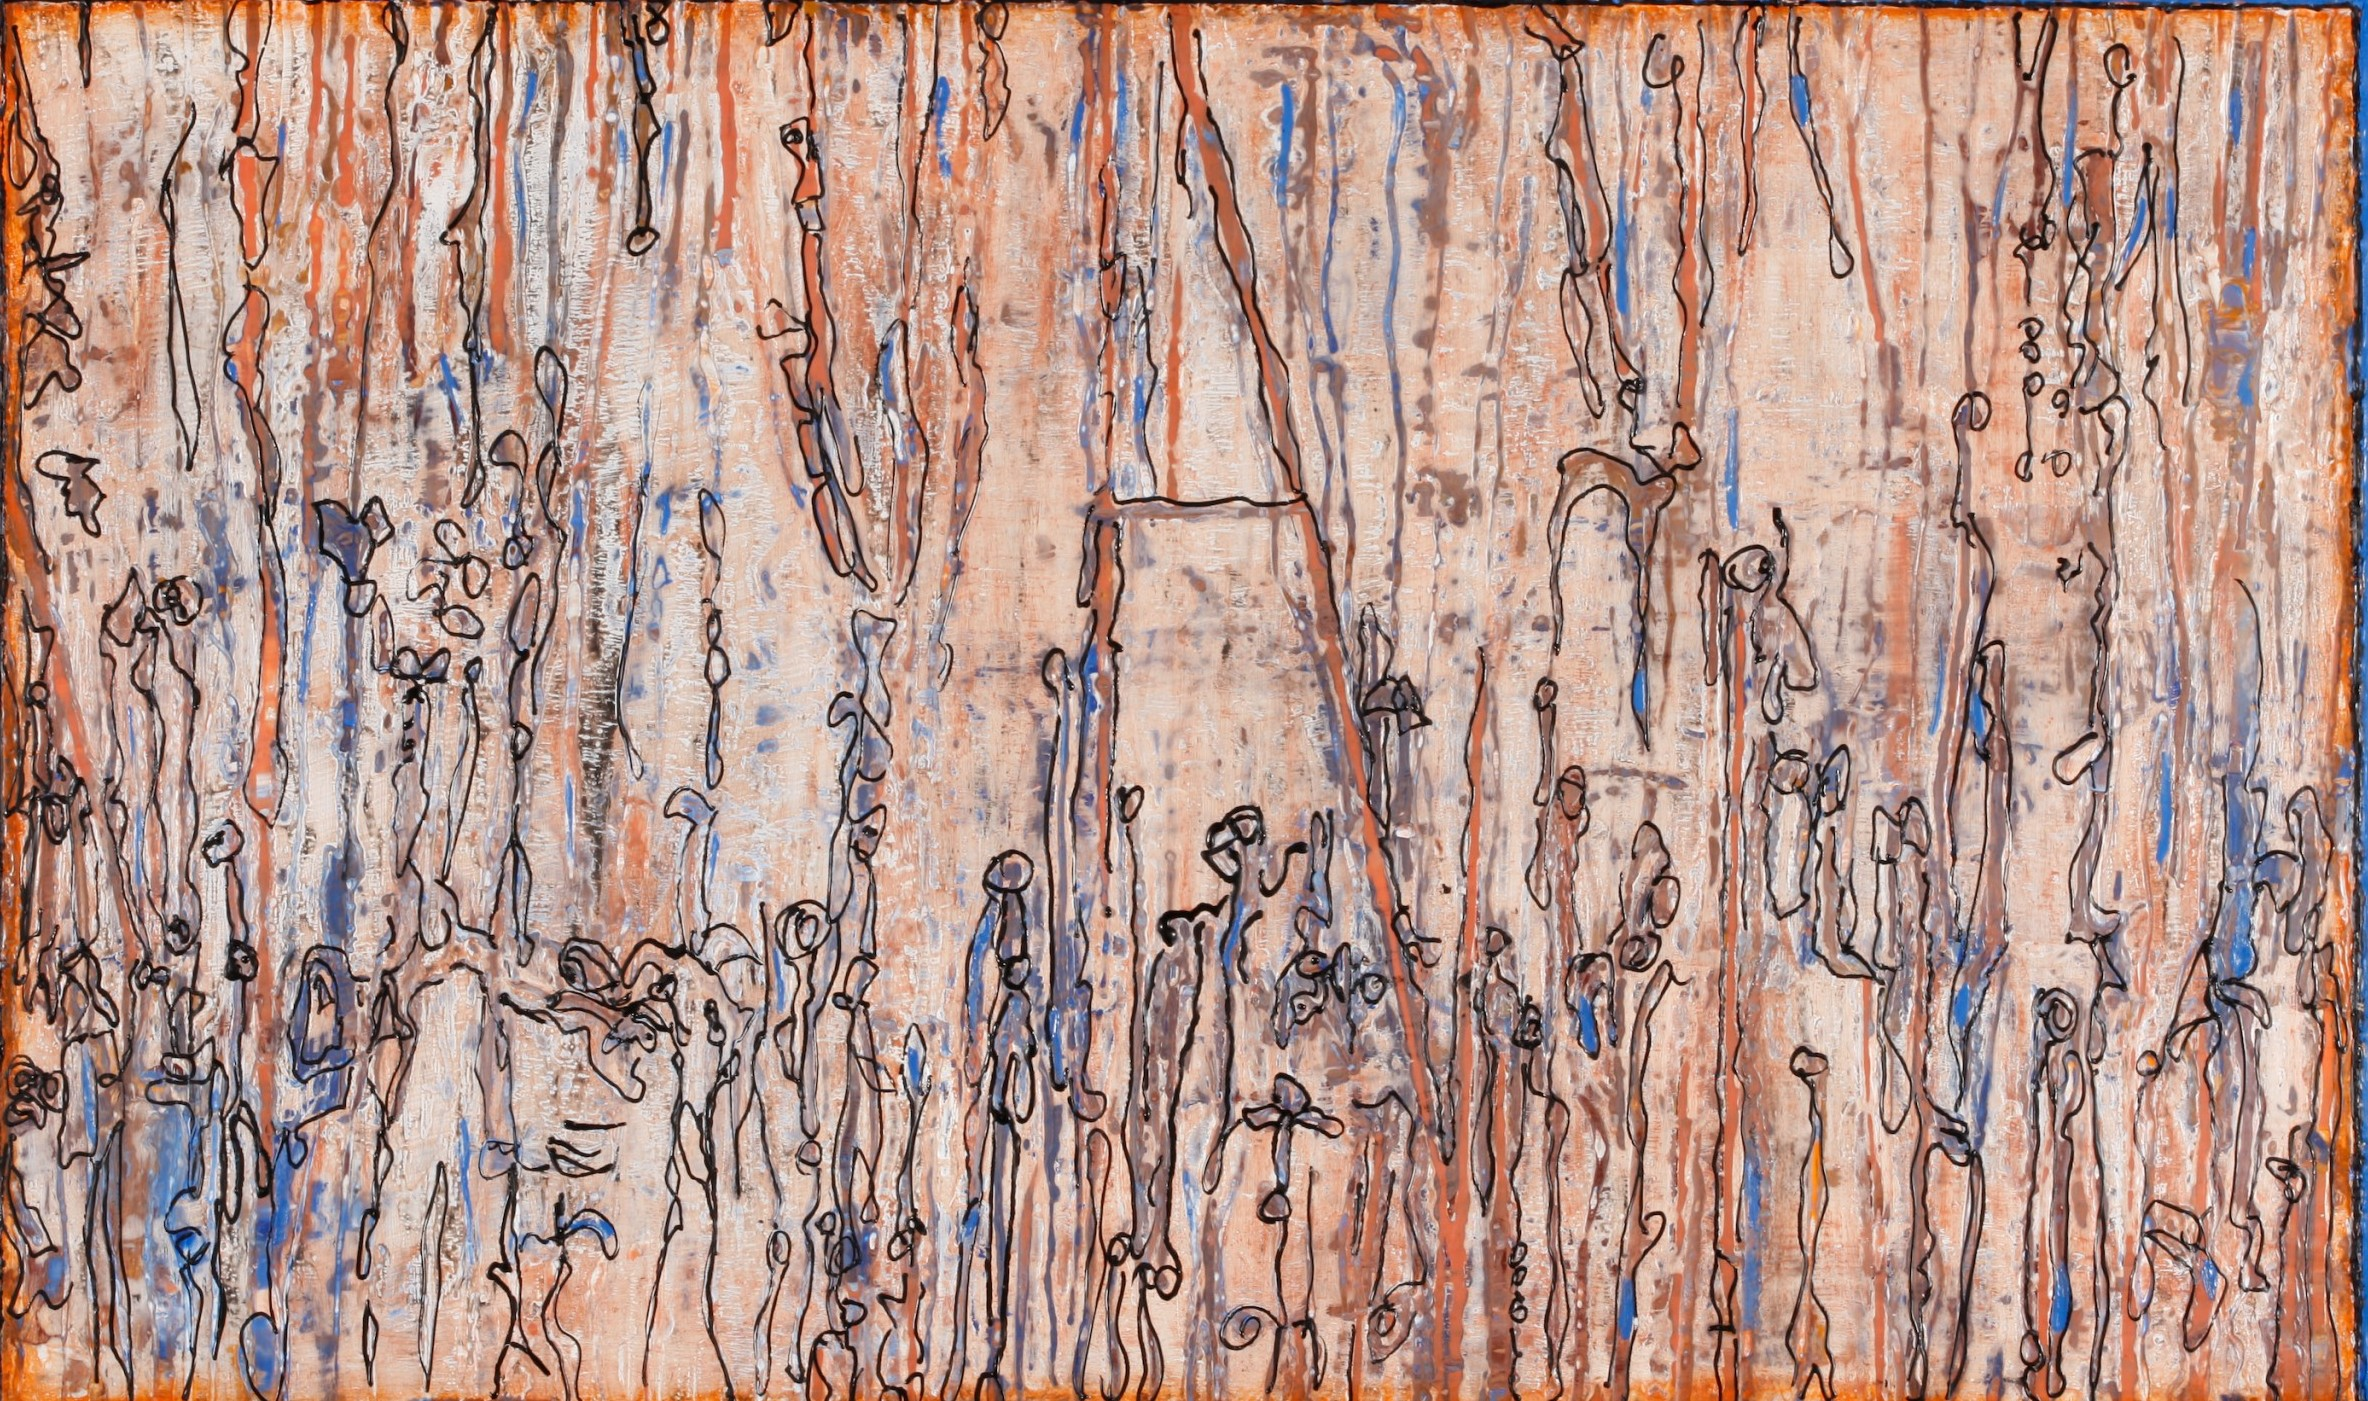 Imagine All The People, Encaustic on wooden panel, 2' x 3', Price: $750